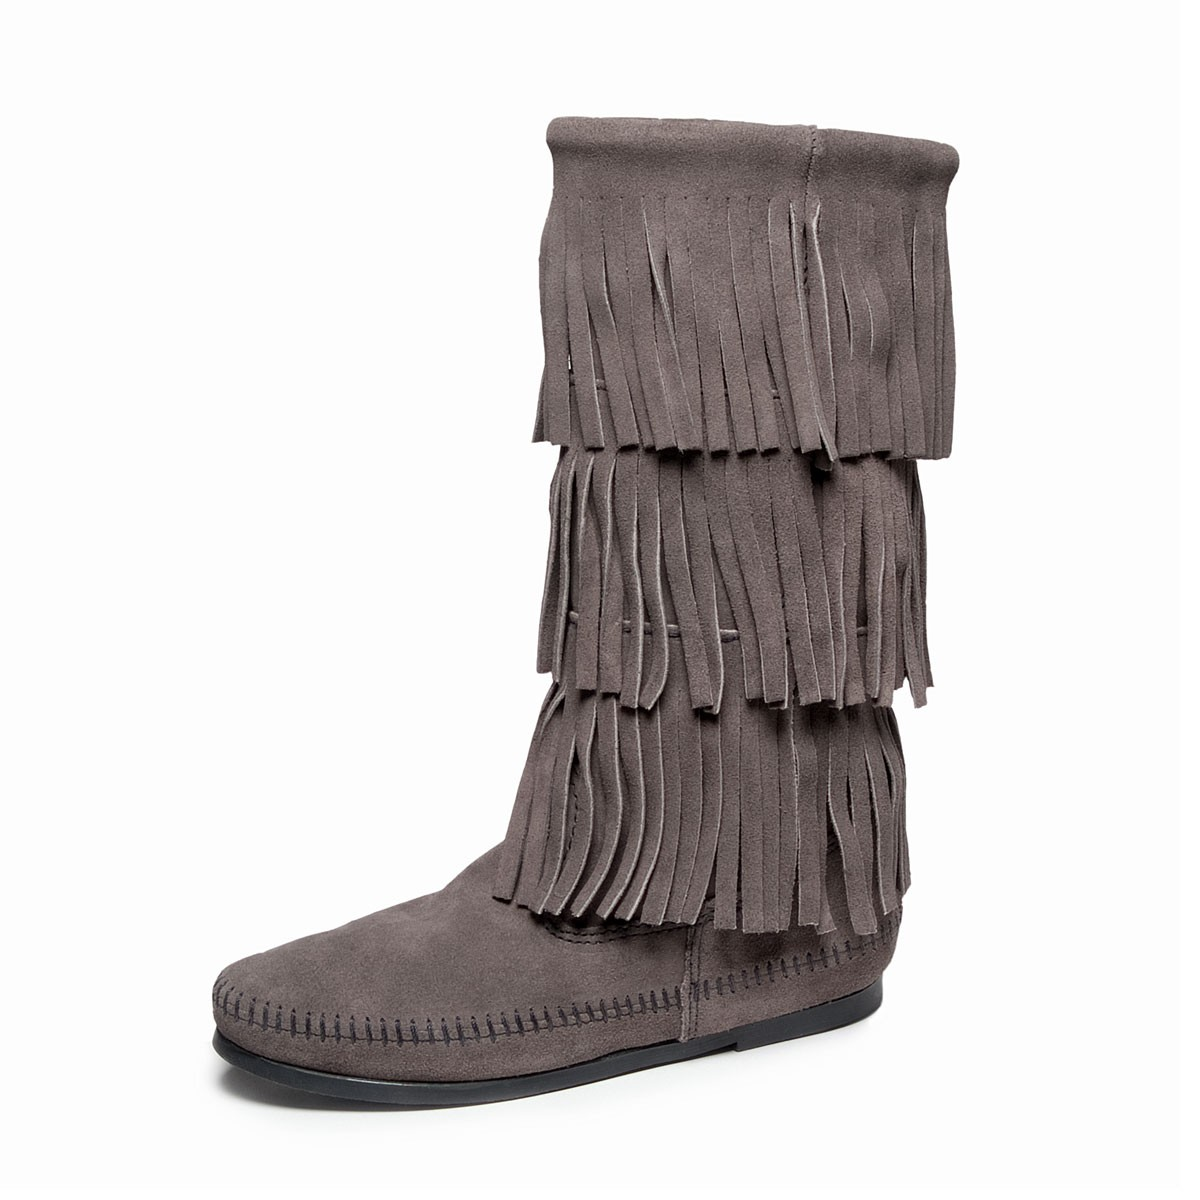 Moccasin women's triple fringe calf high boot